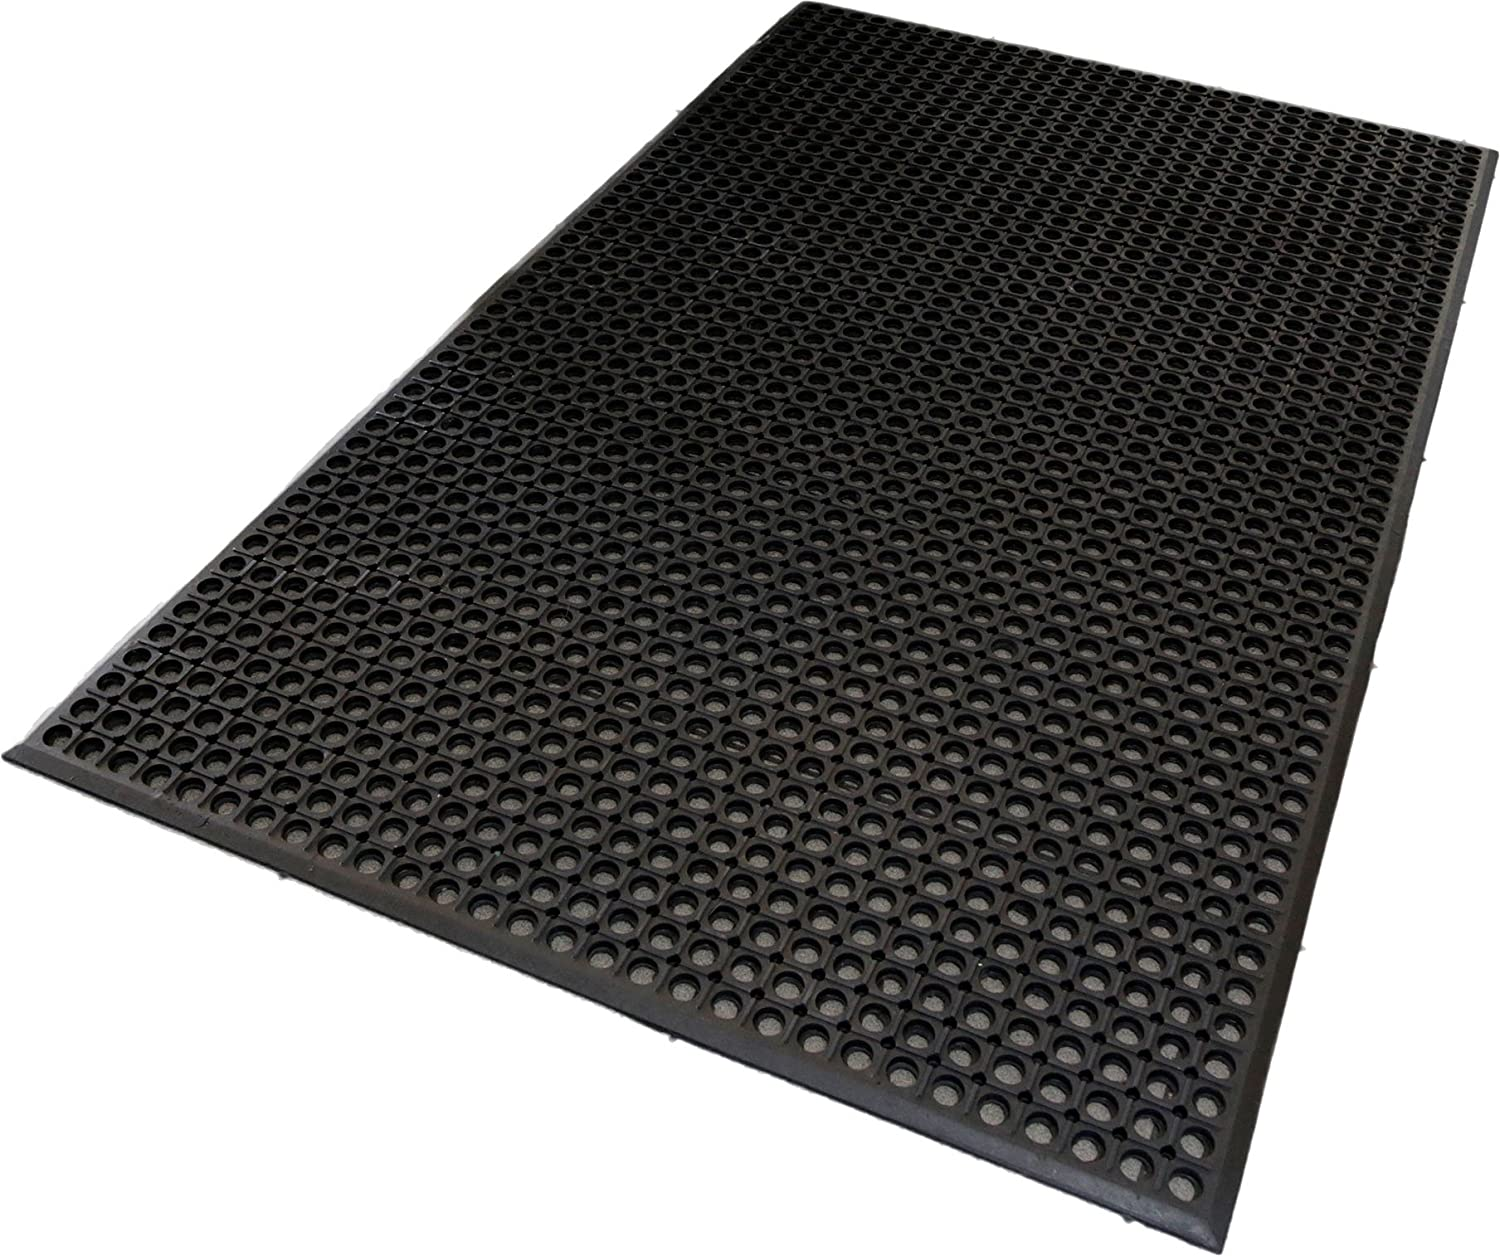 Mats Inc. Professional Series Kitchen Mat, 3' x 5', Black 3' x 5' CSECO35BK